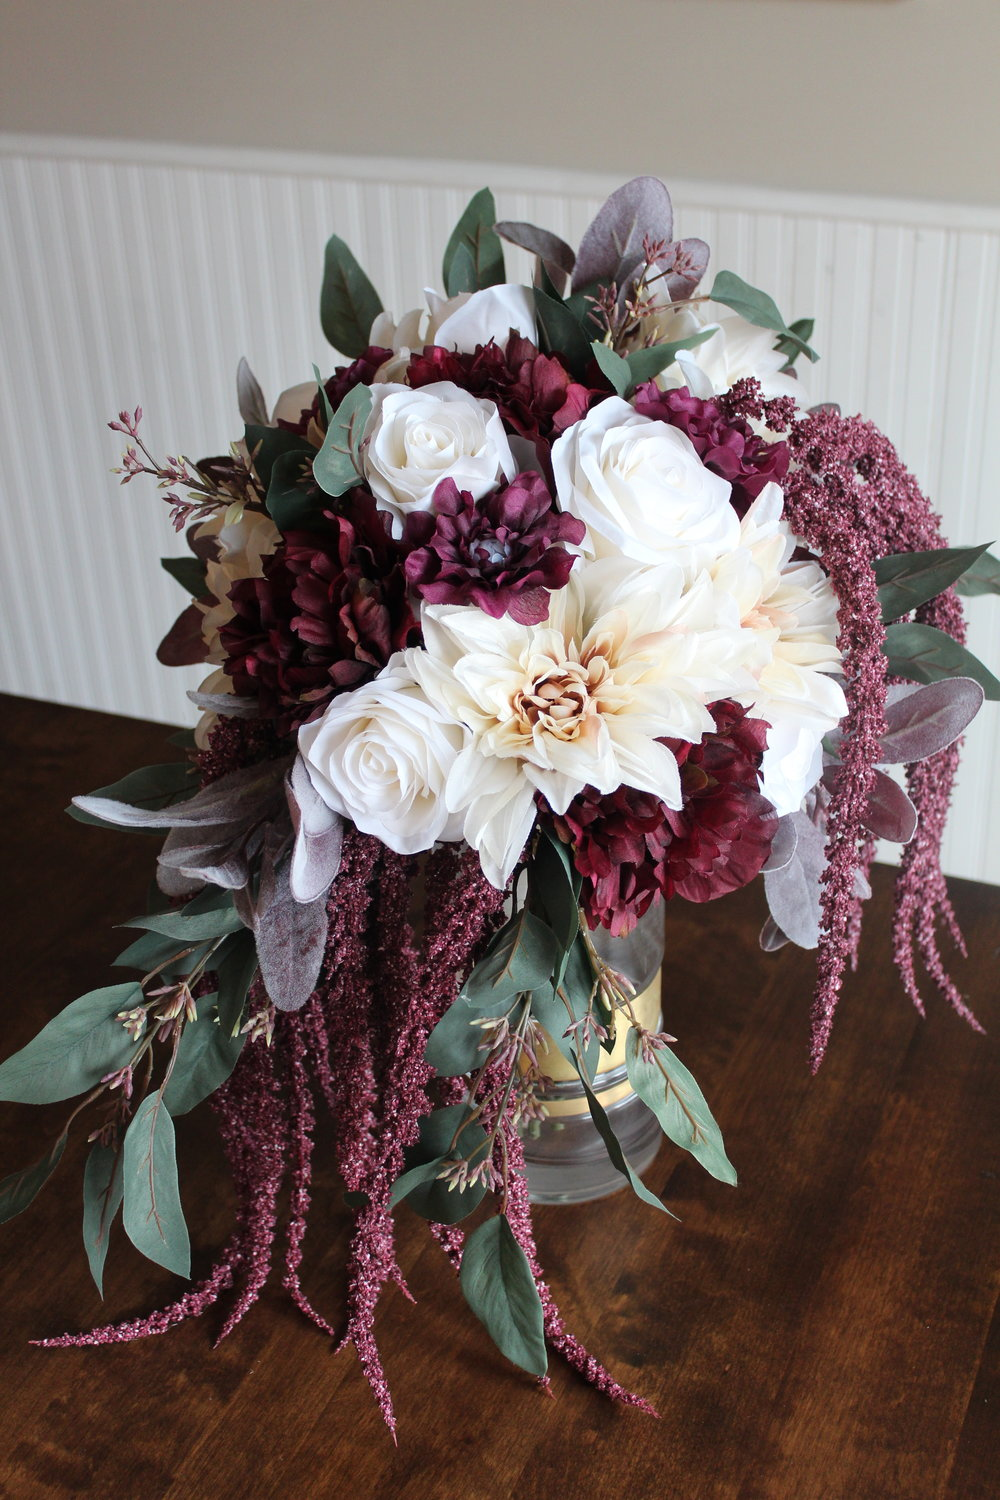 raspberry-blush-silk-wedding-flowers.jpg